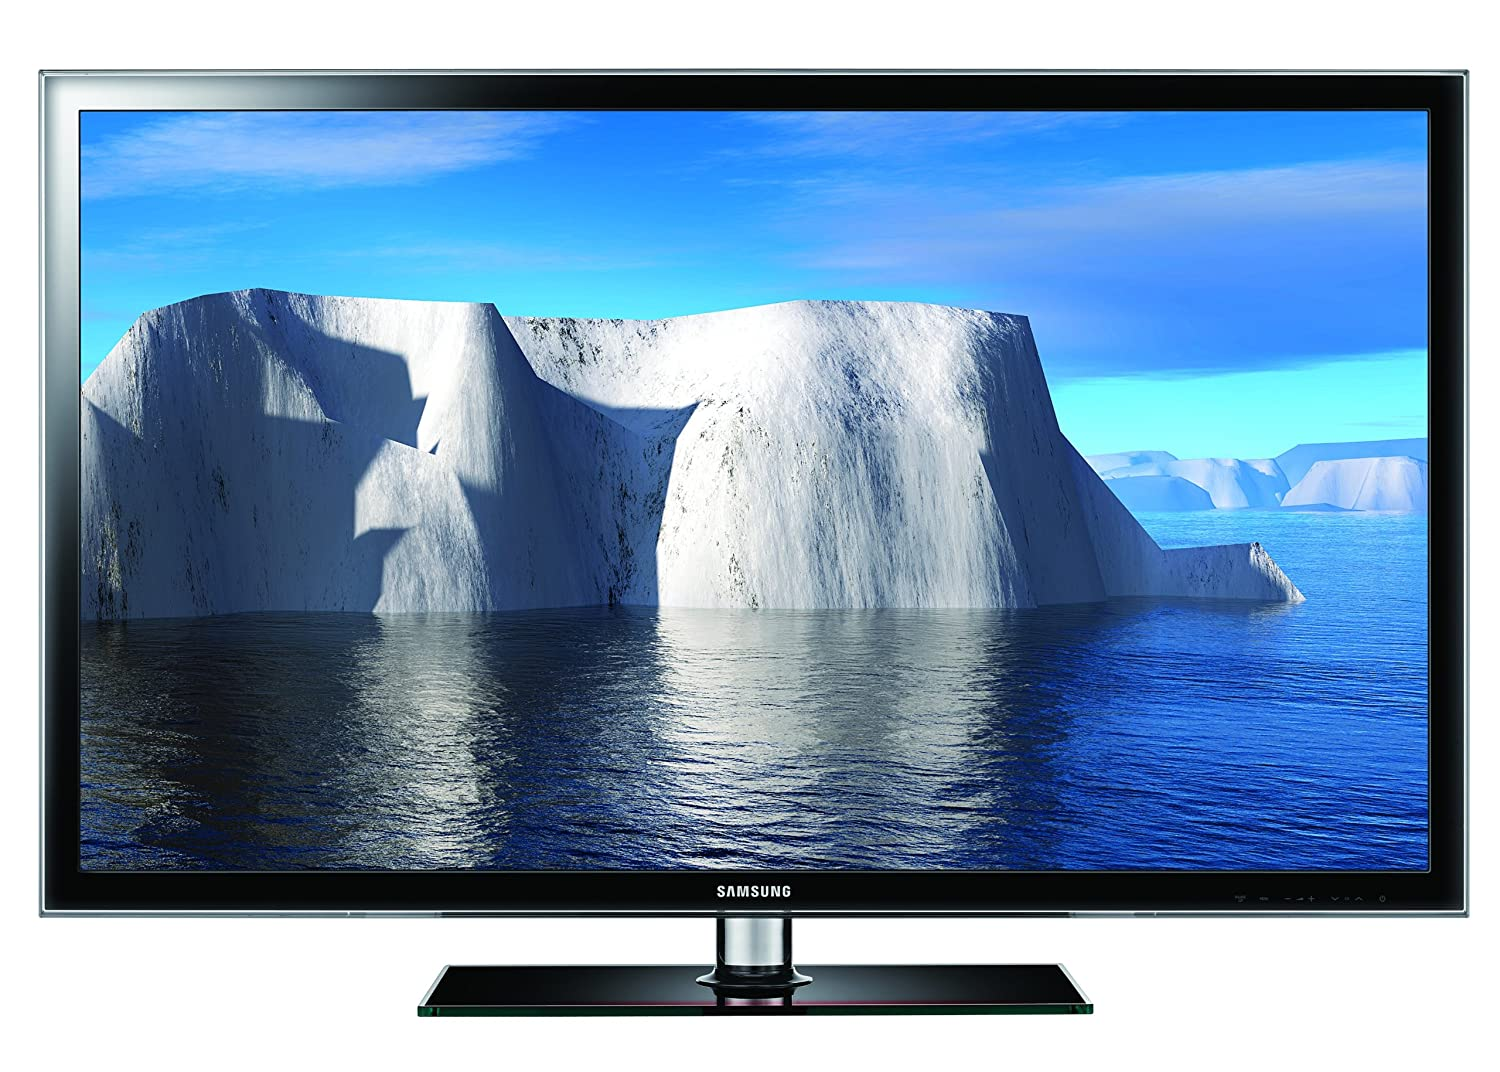 samsung ue46d5000 46 inch widescreen full hd 1080p led television